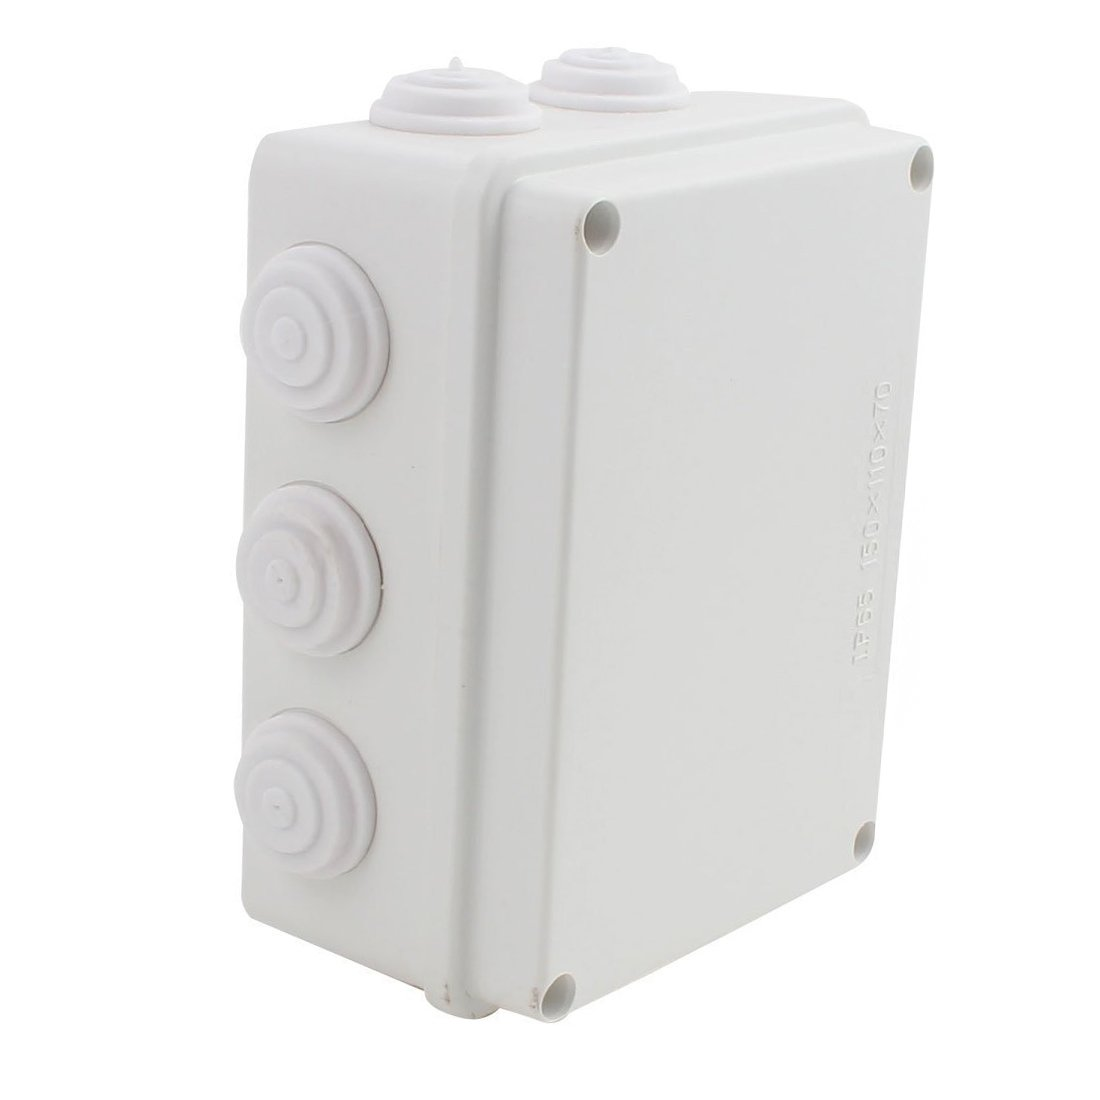 YXQ 150mmx110mmx70mm IP65 Waterproof Junction Box Electric Project Enclosure-Rectangle Power Case with Holes(5.9'' x 4.3'' x 2.8'')